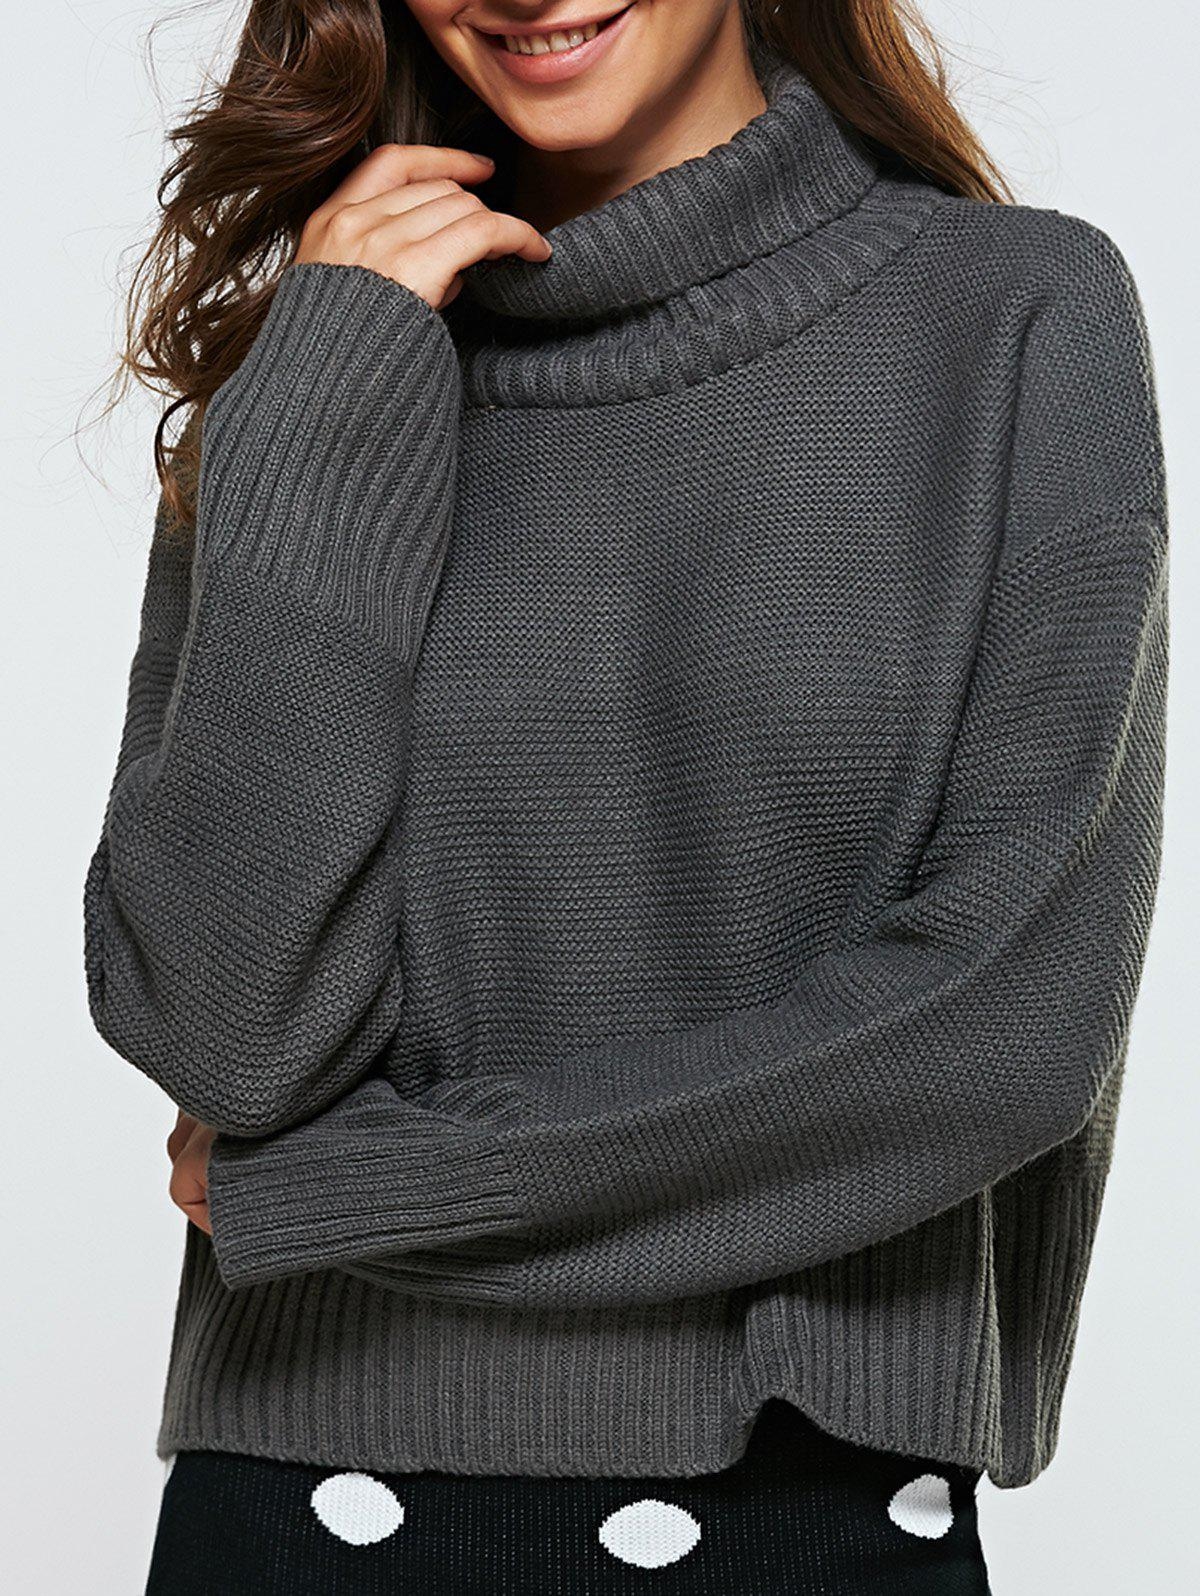 Turtle Neck Ribbed Loose-Fitting Sweater - GRAY ONE SIZE